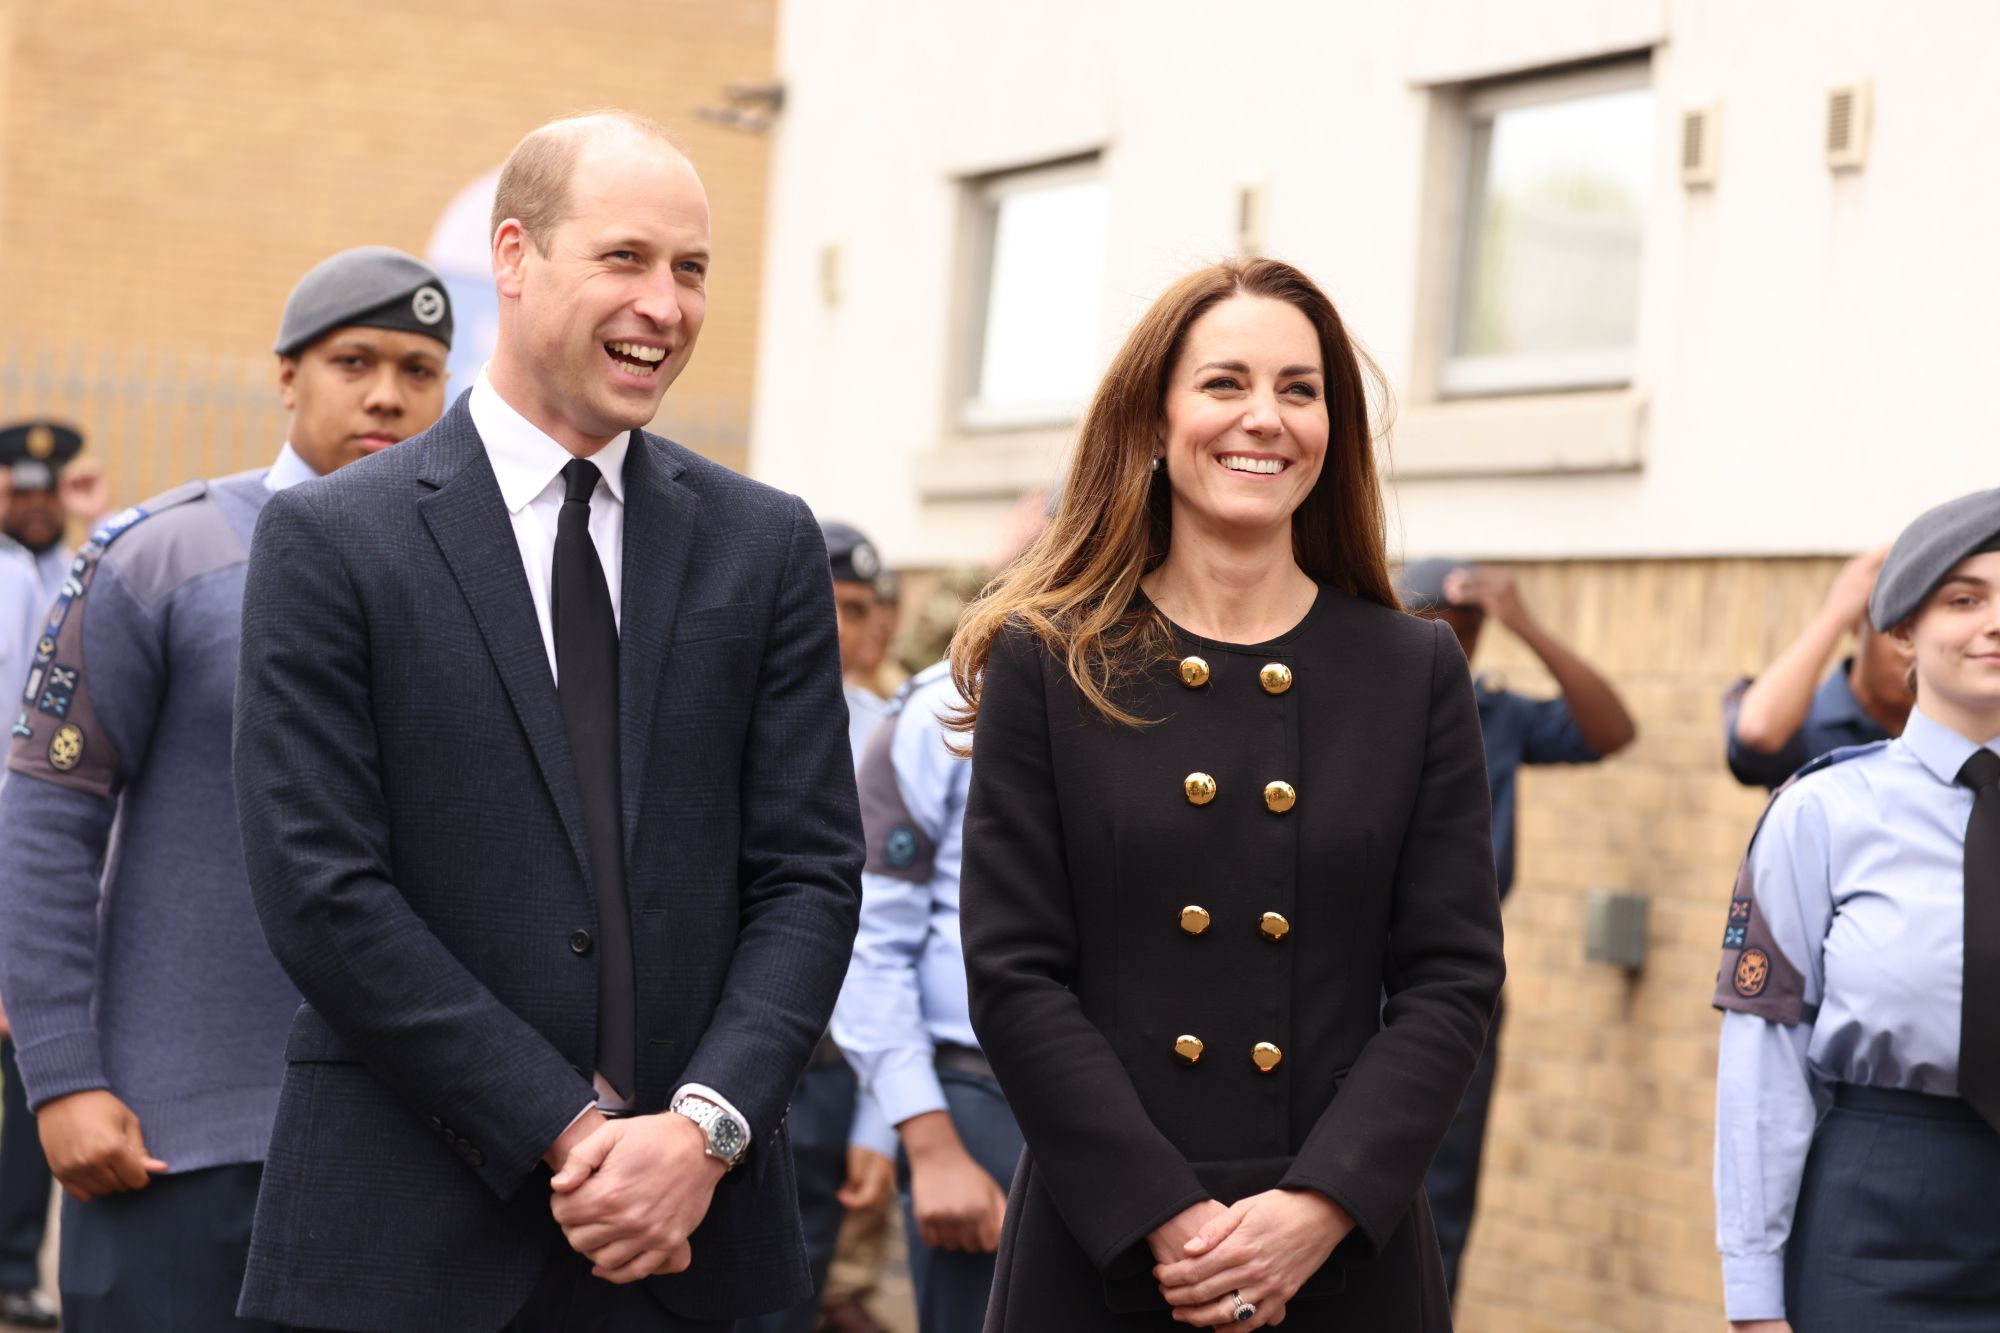 LONDON, ENGLAND – APRIL 21:  Prince William, Duke of Cambridge and Catherine, Duchess of Cambridge, wearing black as a mark of respect following the Duke of Edinburgh's passing, visit 282 East Ham Squadron, Air Training Corps in East London on April 21, 2021 in London, England. During the visit, the Squadron paid tribute to The Duke of Edinburgh, who served as Air Commodore-in-Chief of the Air Training Corps for 63 years. In 2015, The Duke passed the military patronage to The Duchess of Cambridge who be